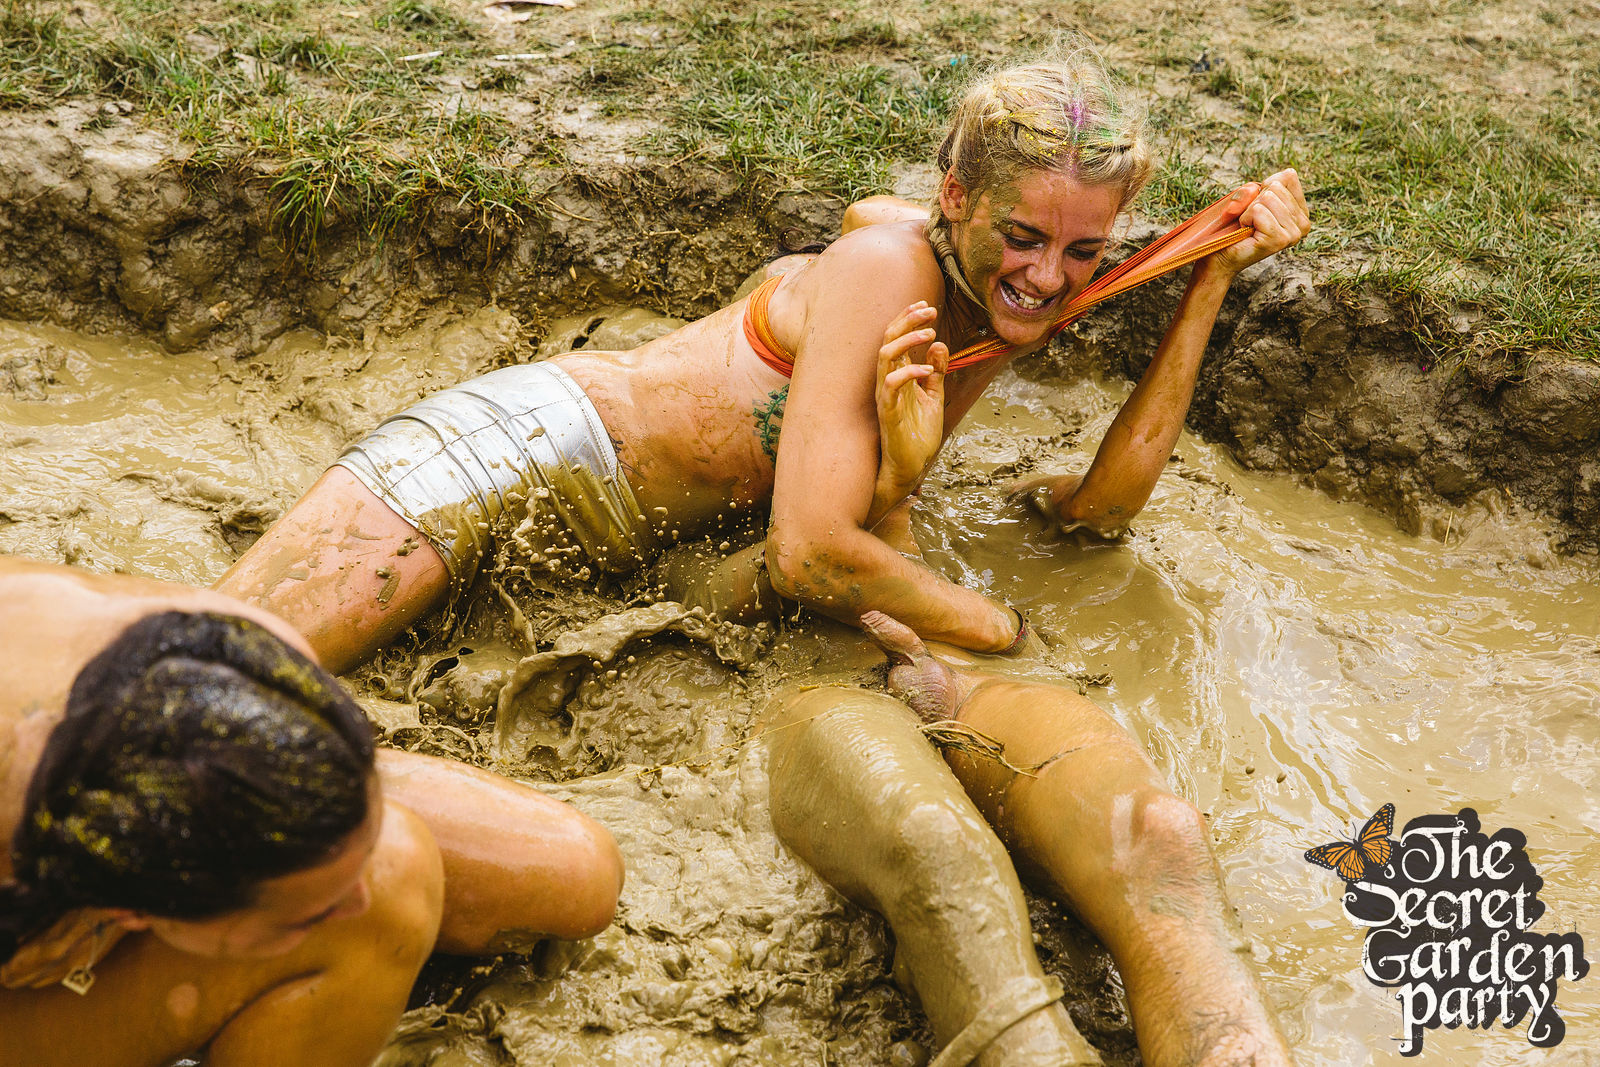 Congratulate, mud wrestling naked girls